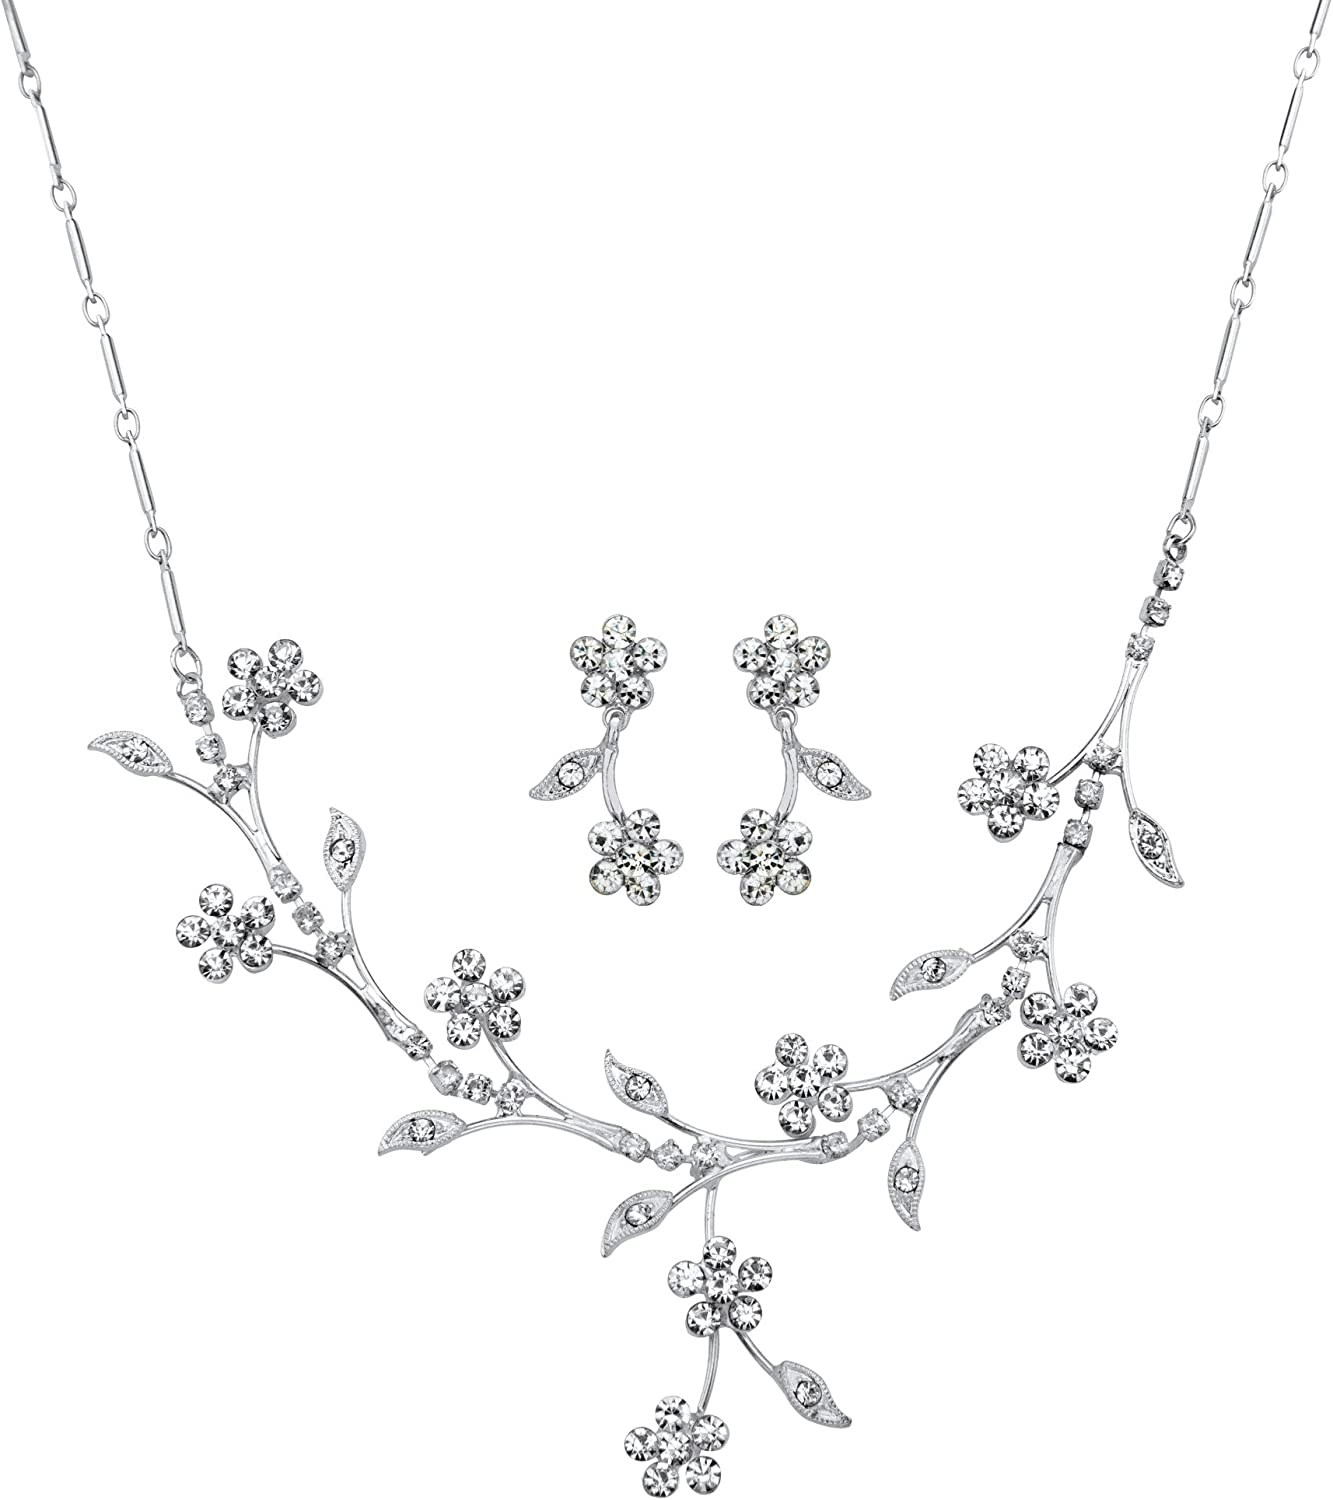 16.5 inches Plus 3 inch Extension Silvertone Round Crystal Floral Vine Drop Earring and Necklace Set Lobster Claw Clasp